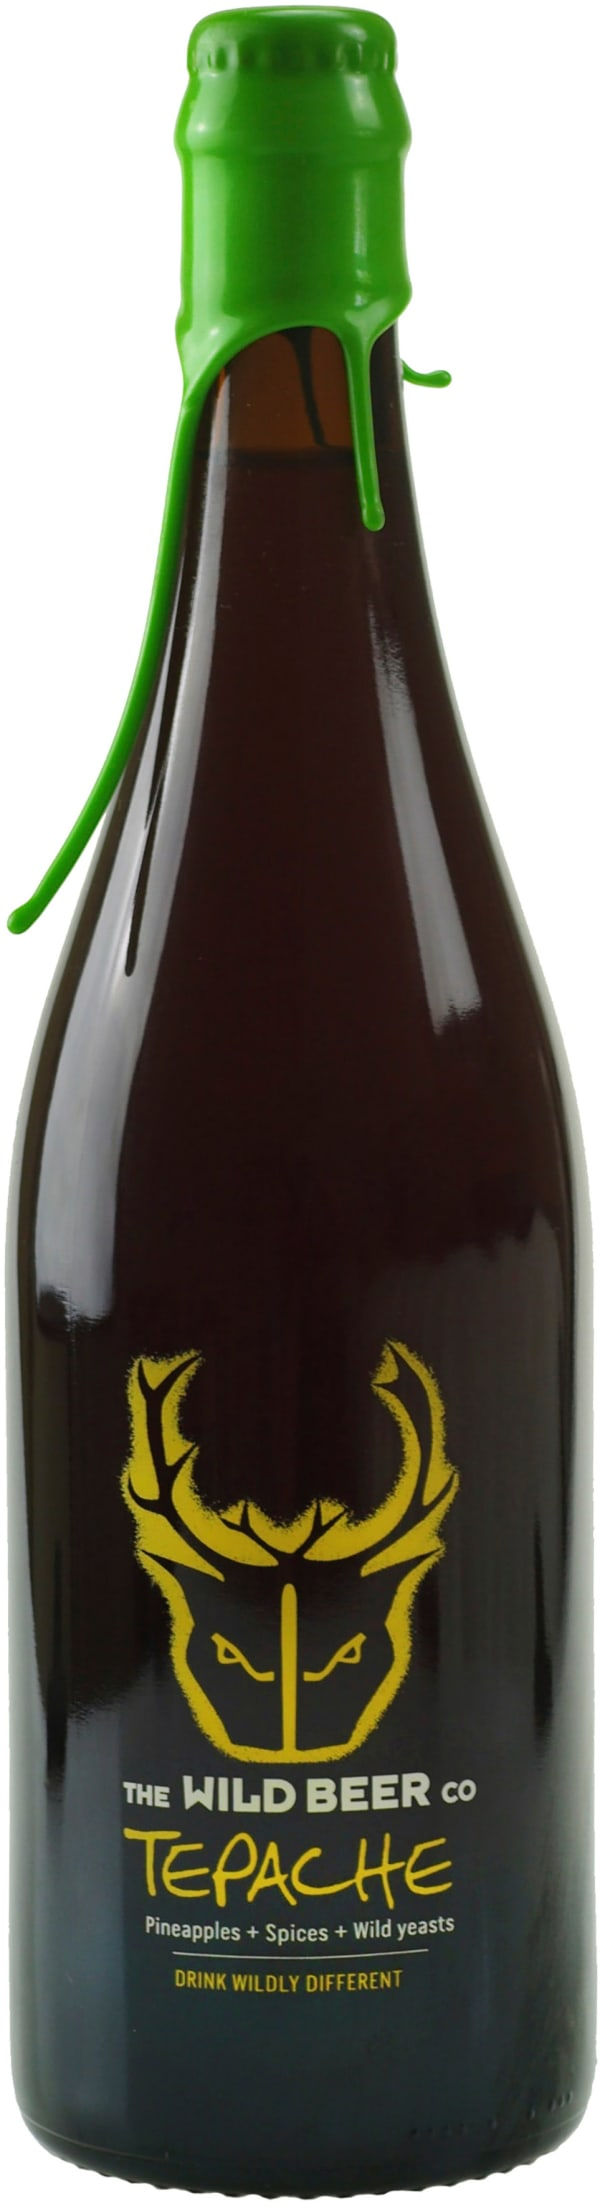 Wild Beer Tepache Sour Ale